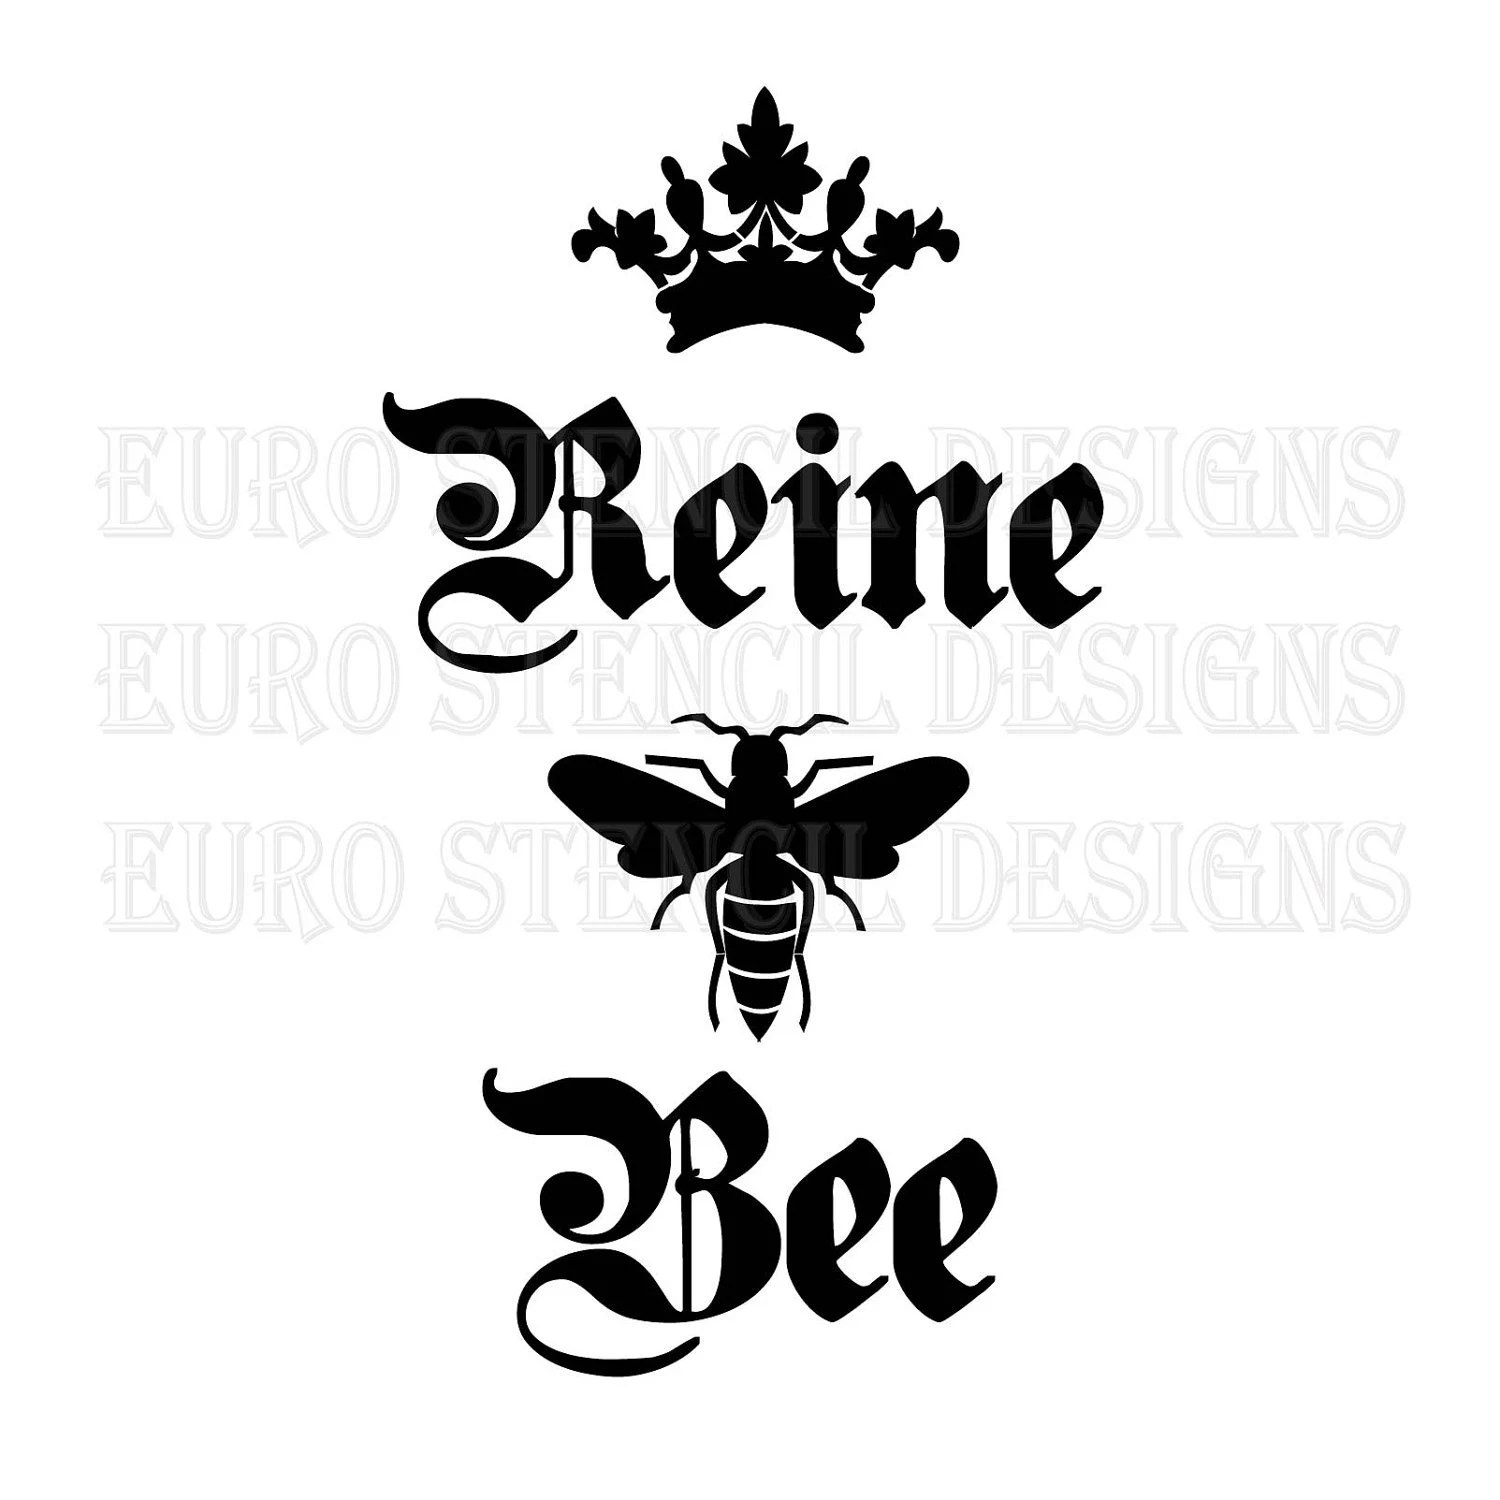 Euro Stencil Design Queen Bee Crown French Stencil Used 4